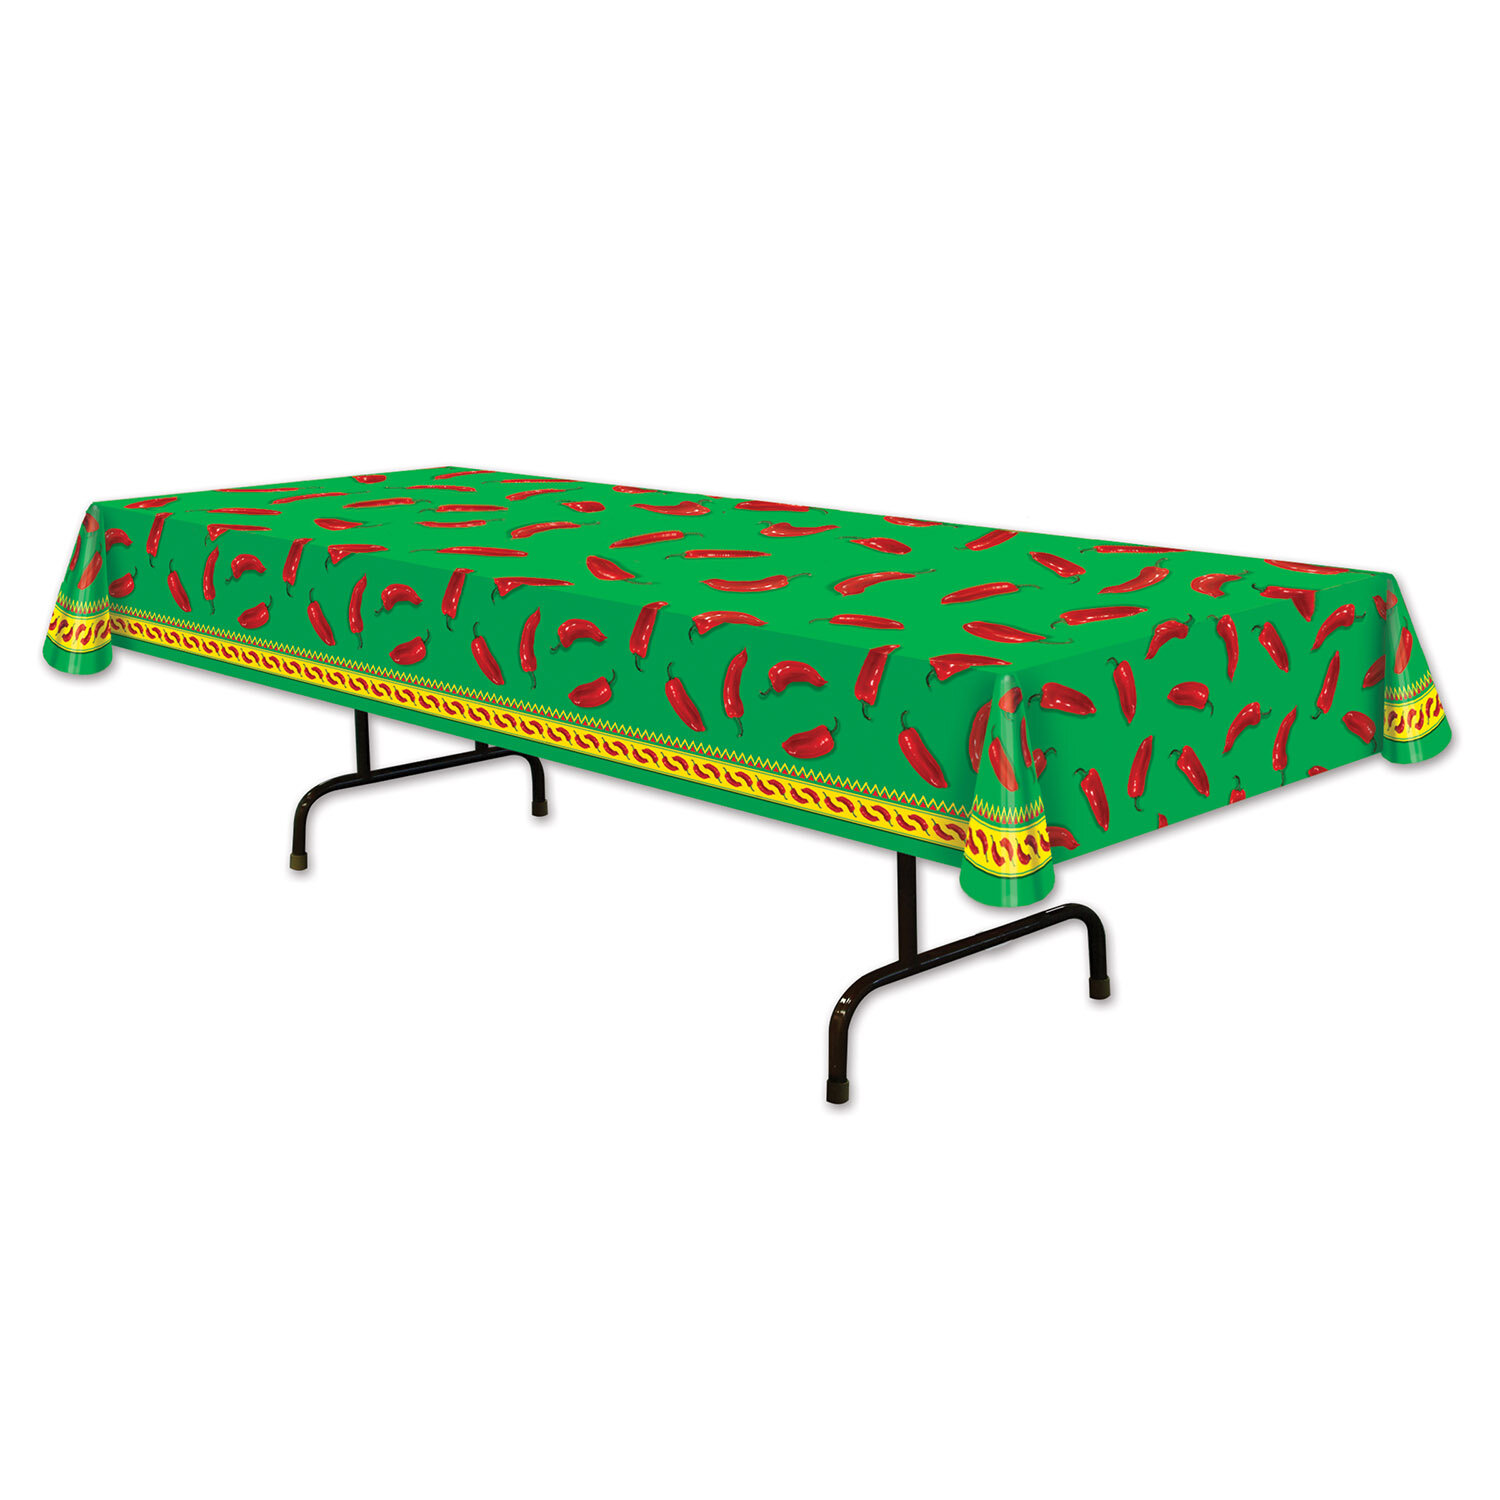 Attractive East Urban Home Chili Pepper Tablecloth | Wayfair